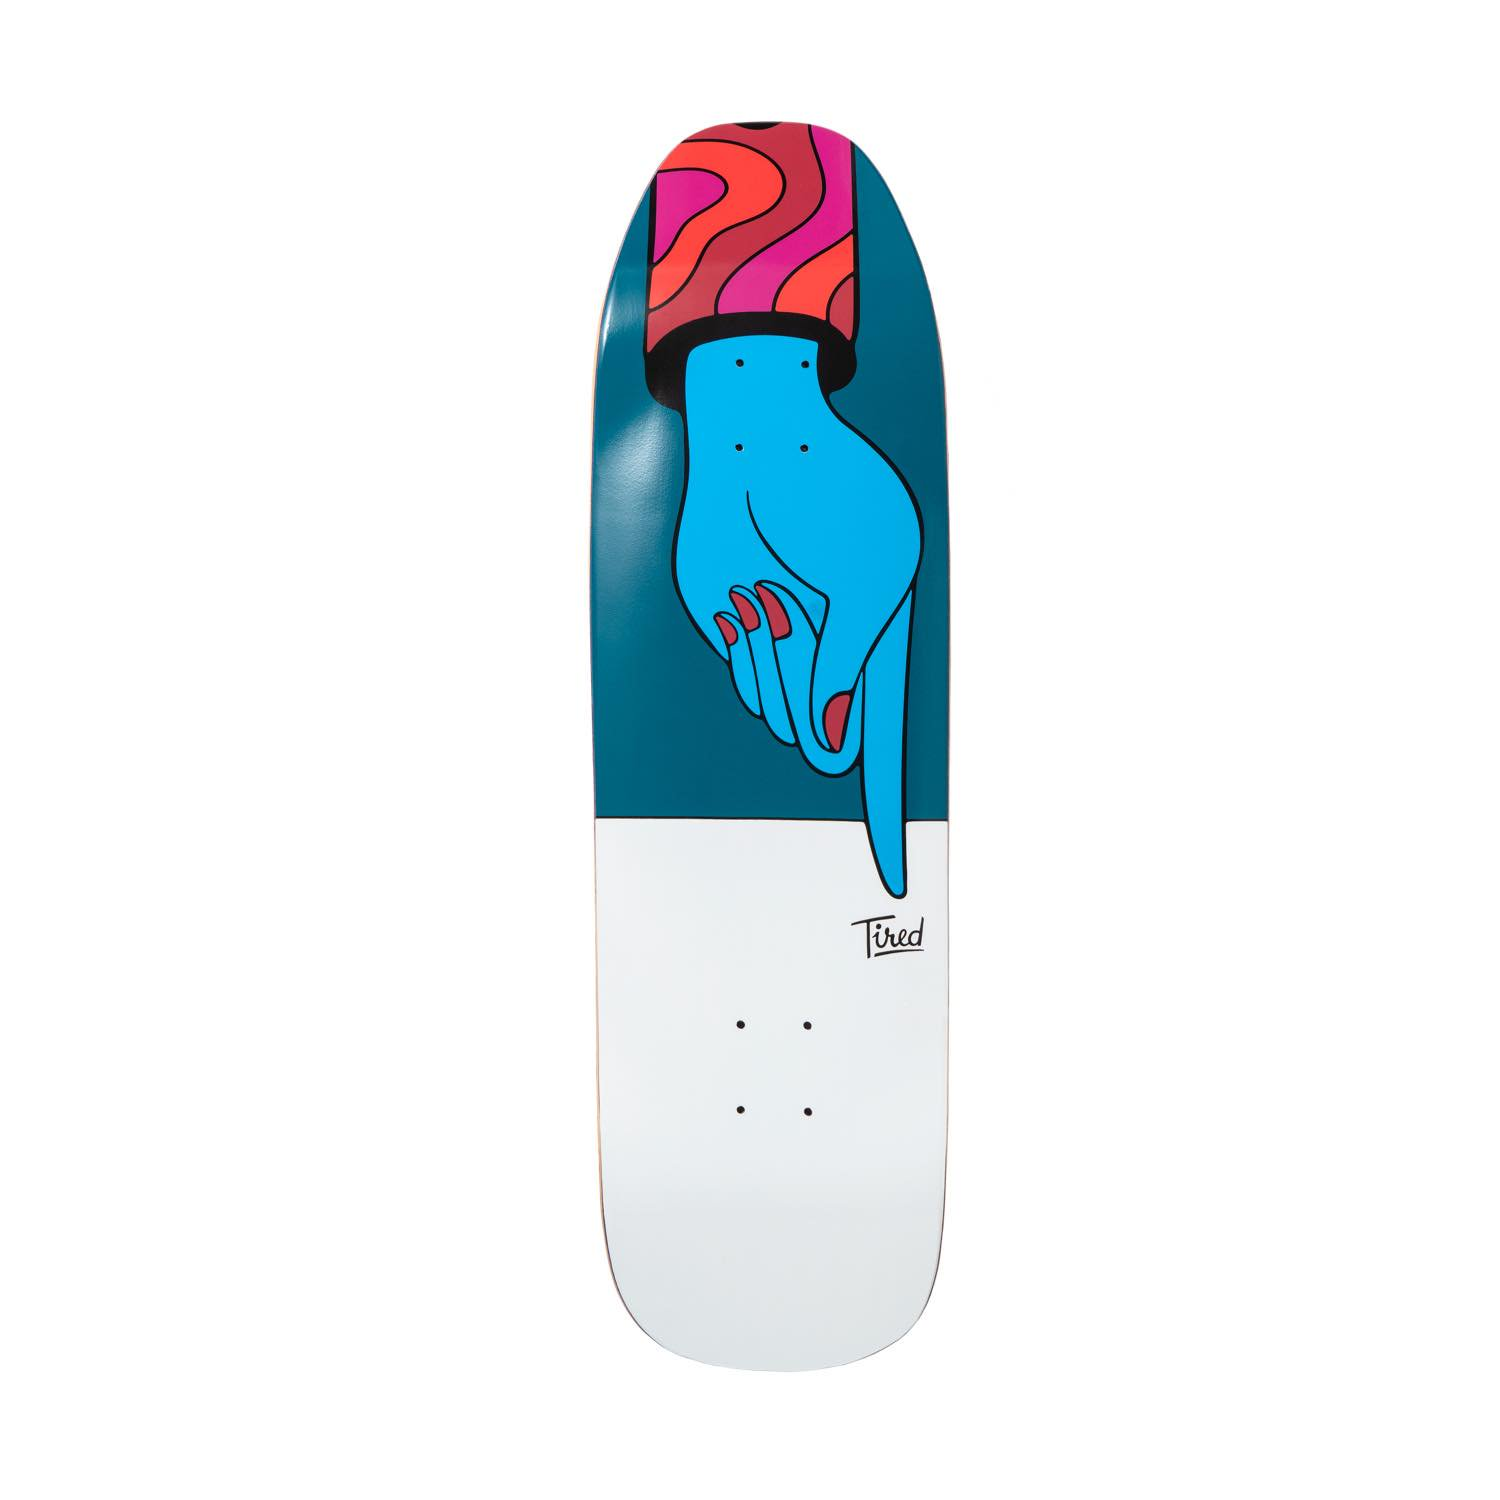 <img class='new_mark_img1' src='https://img.shop-pro.jp/img/new/icons8.gif' style='border:none;display:inline;margin:0px;padding:0px;width:auto;' />Tired タイレッド / FINGER SKATEBOARD/STUMPNOSE